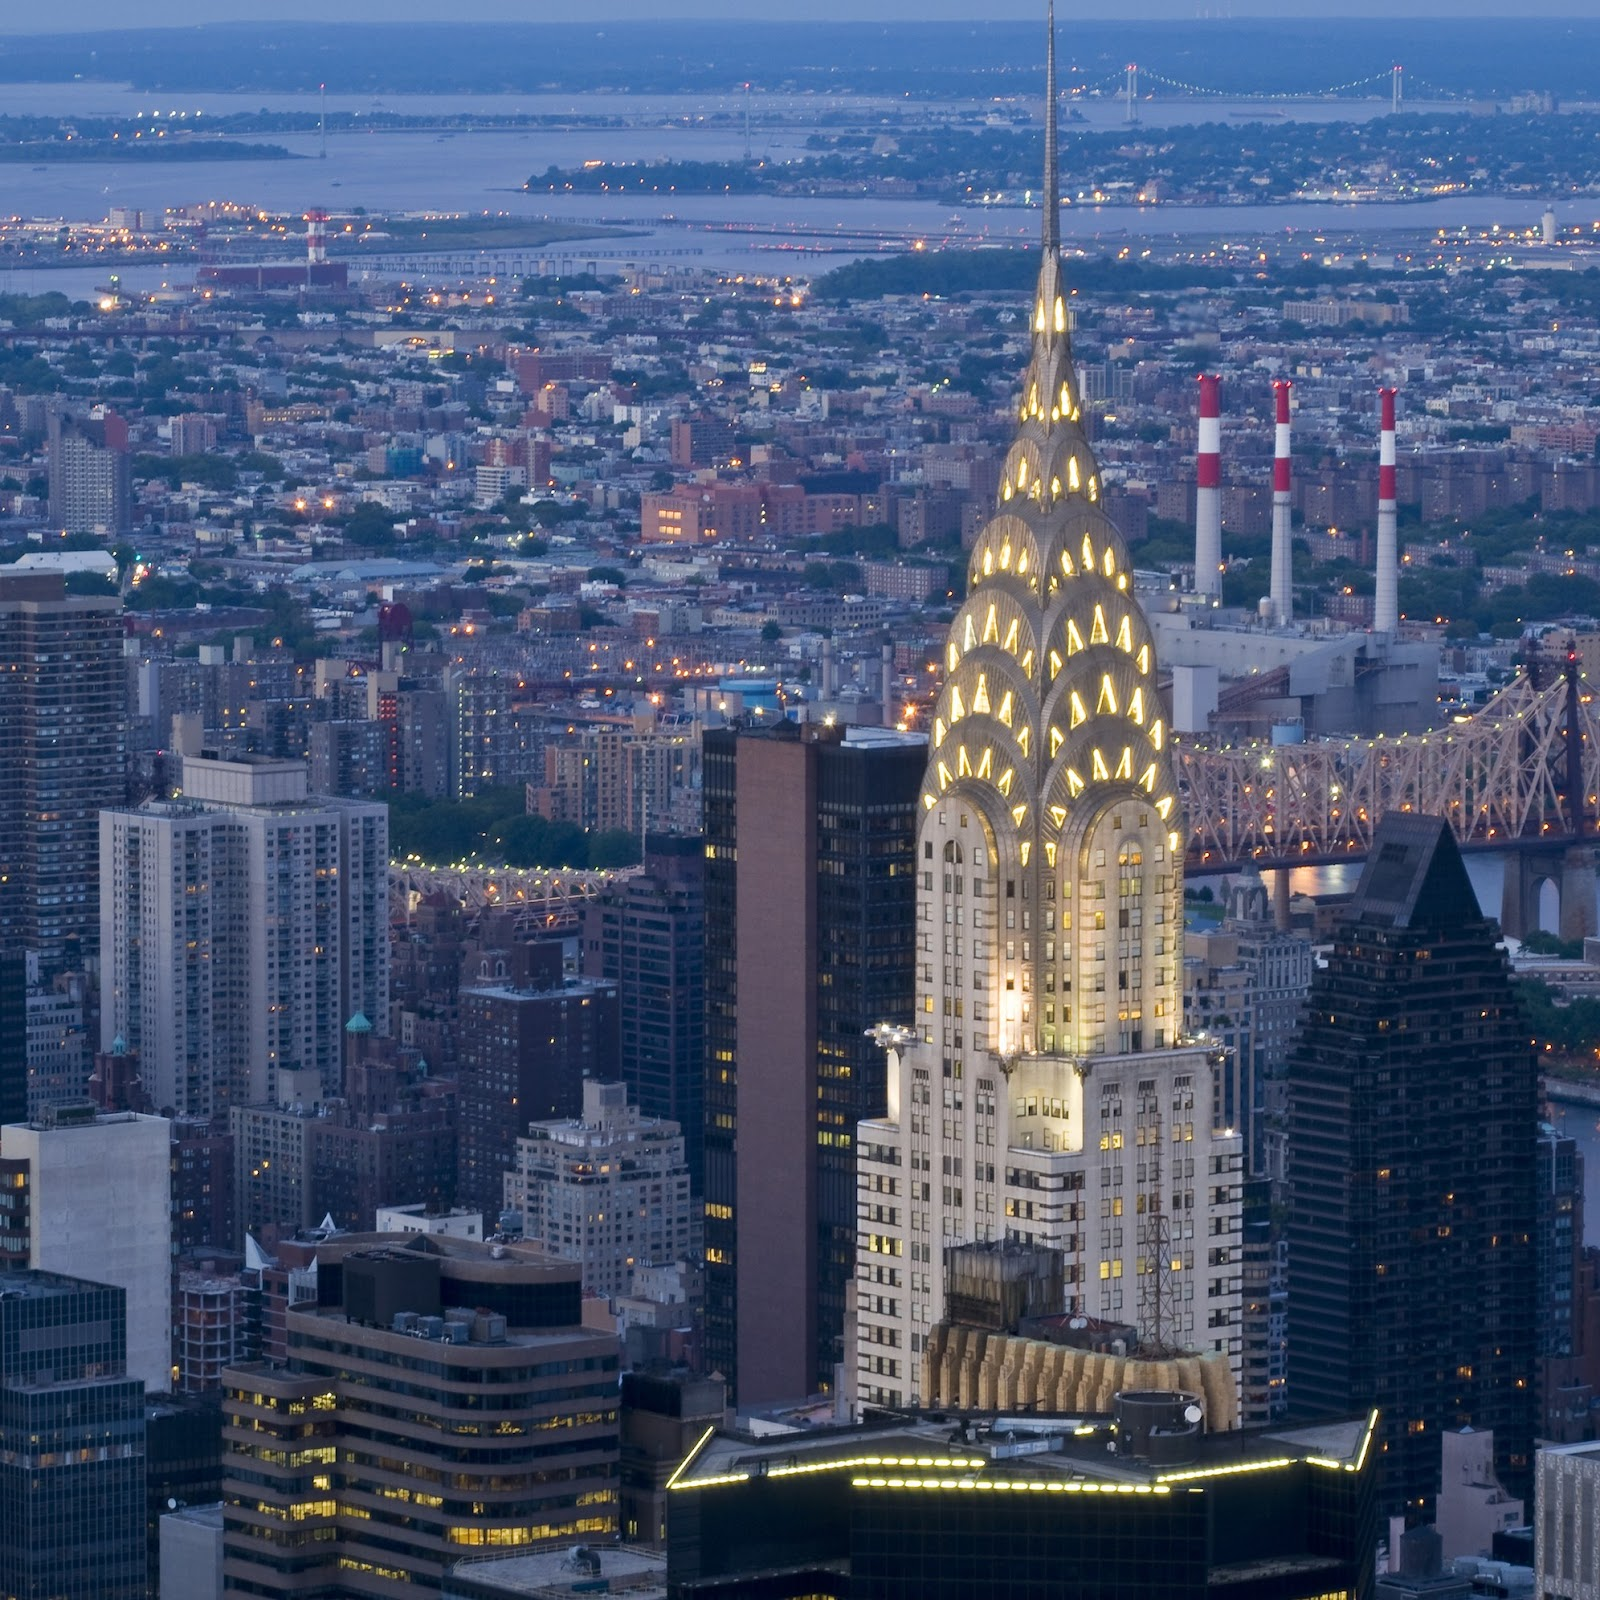 Chrysler Building, gedung pencakar langit bergaya art deco karya William Van Alen - source: architecturaldigest.com